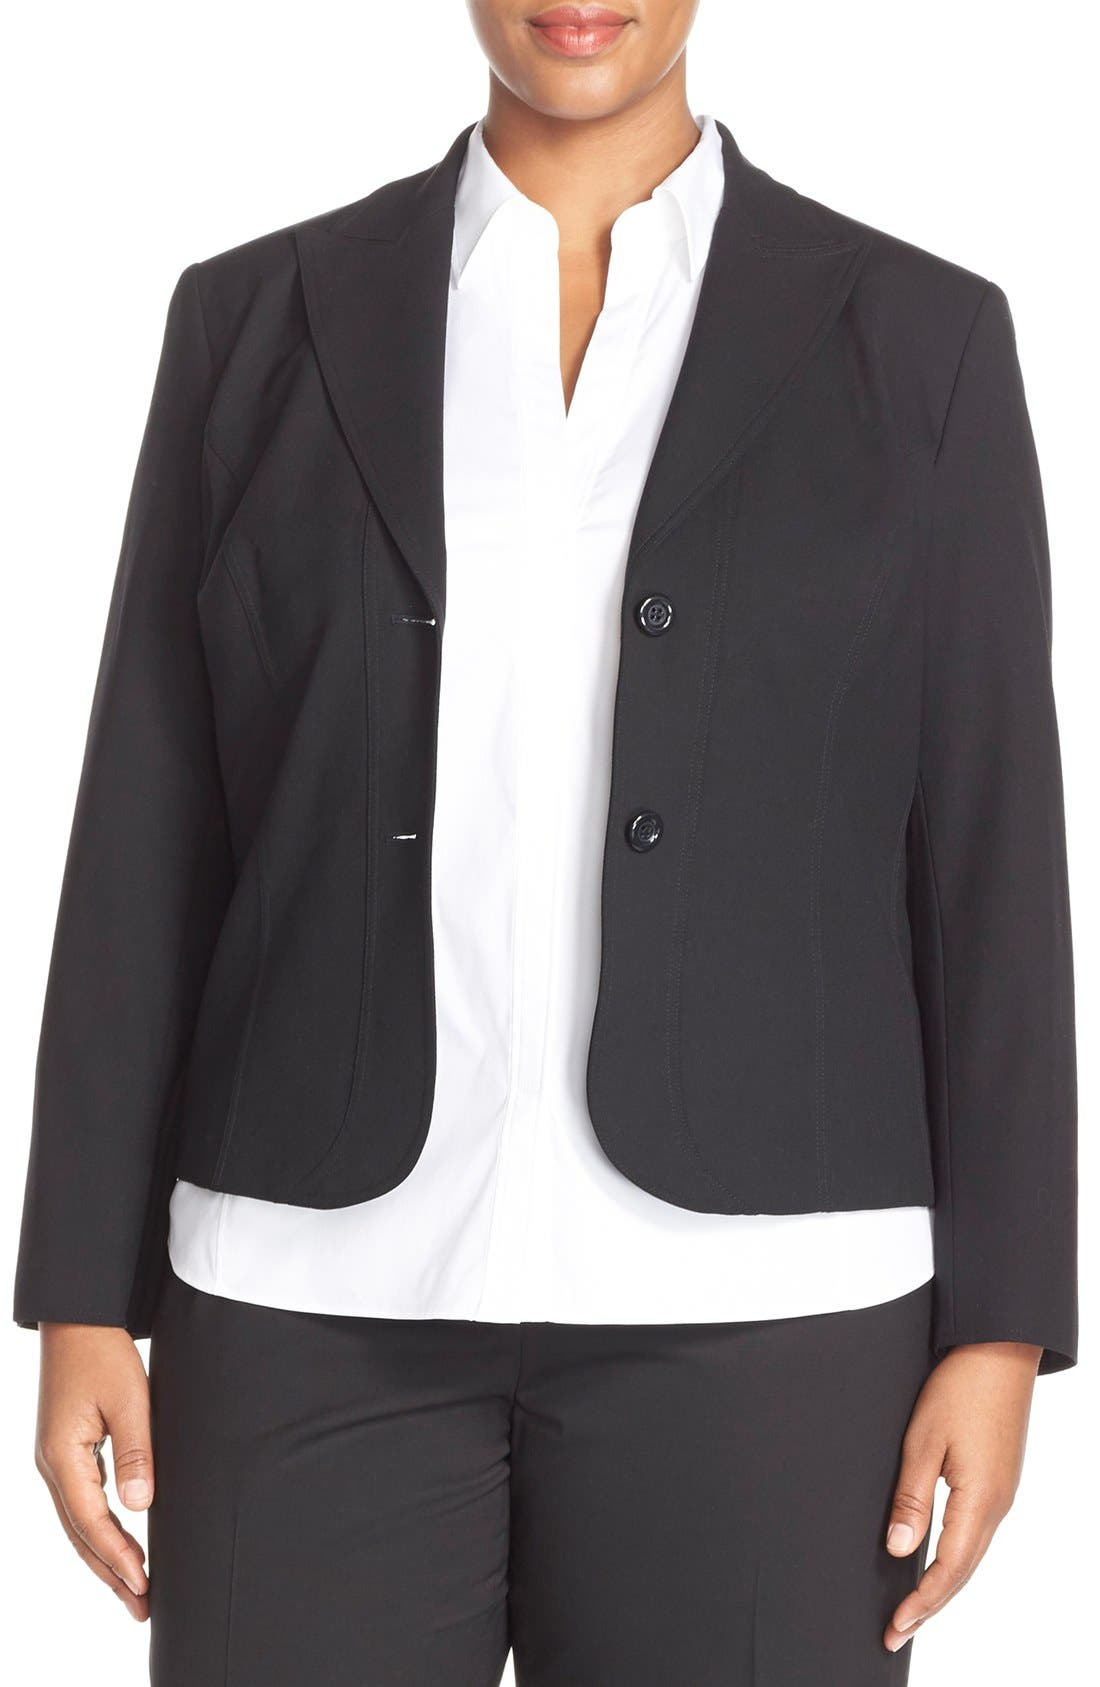 'Gladstone' Stretch Wool Jacket,                         Main,                         color, 001